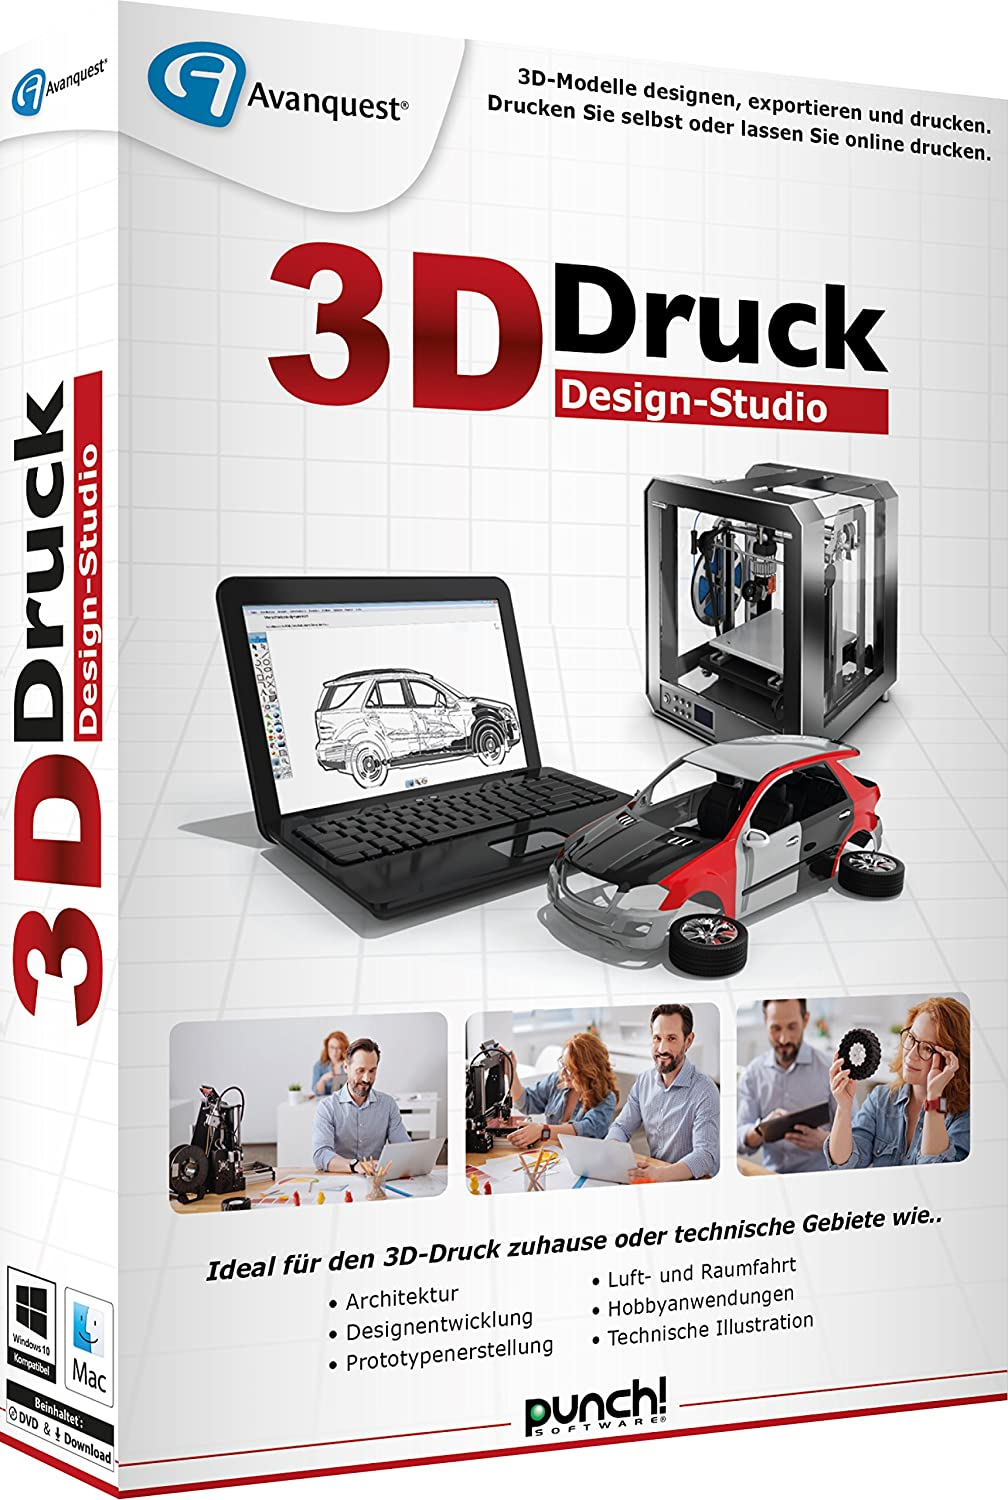 Avanquest 3D-Druck Design-Studio Software: Amazon.de: Software